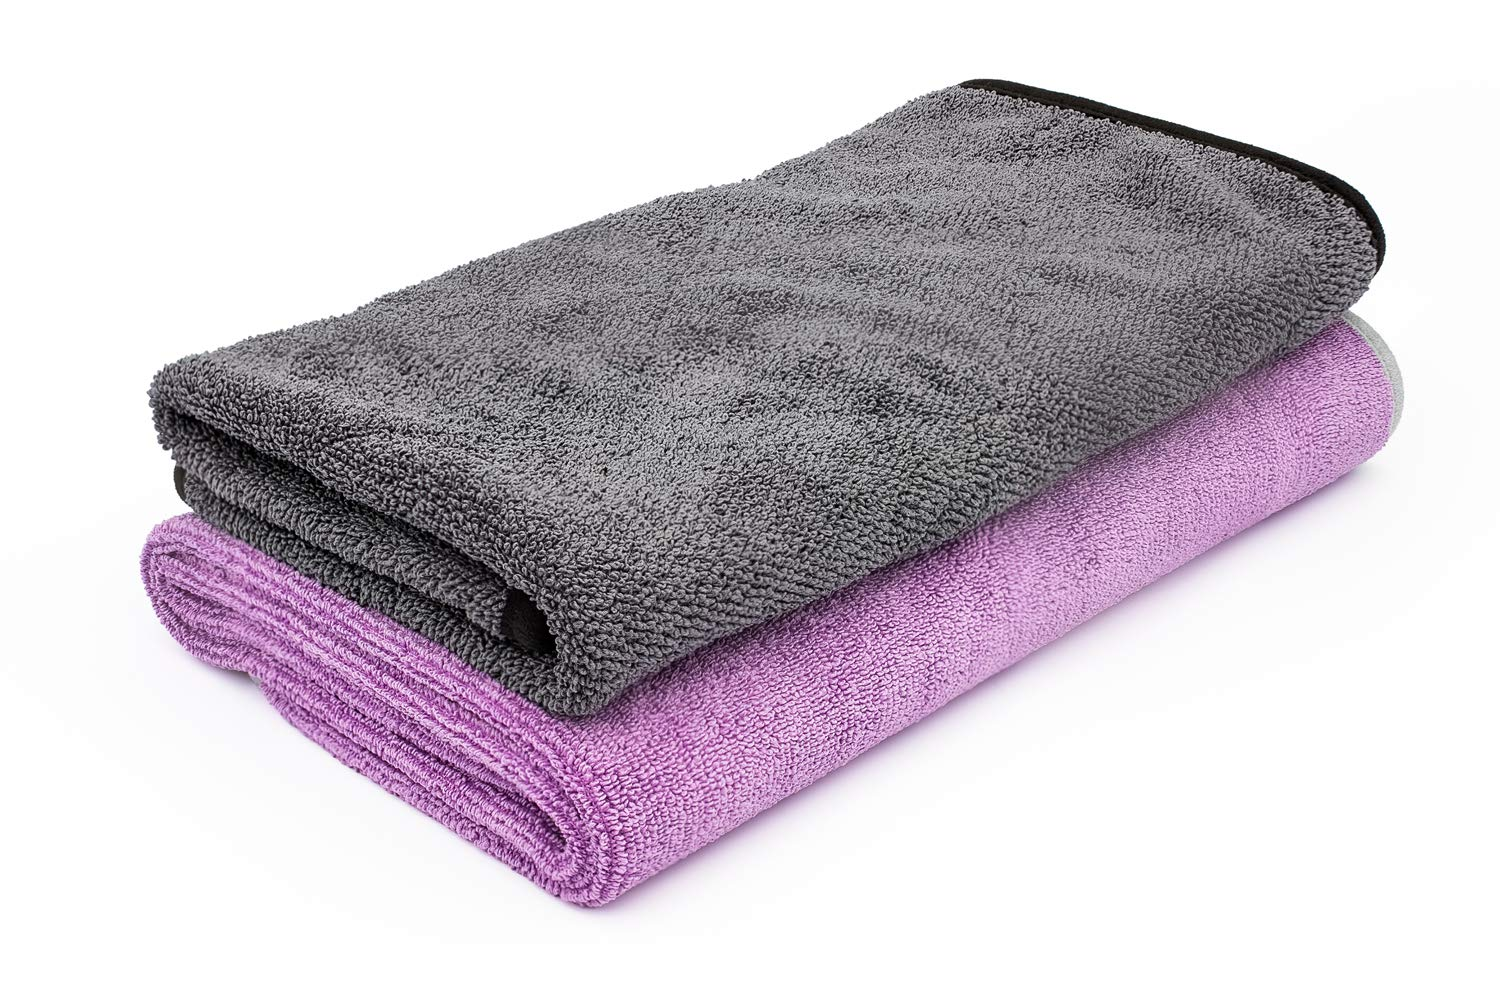 THE RAG COMPANY 25 in. x 36 in. Twist N' Shout and 20 in. x 24 in. Double TWISTRESS Professional Korean 70/30 Twist Loop Microfiber Drying Towel Combo Kit